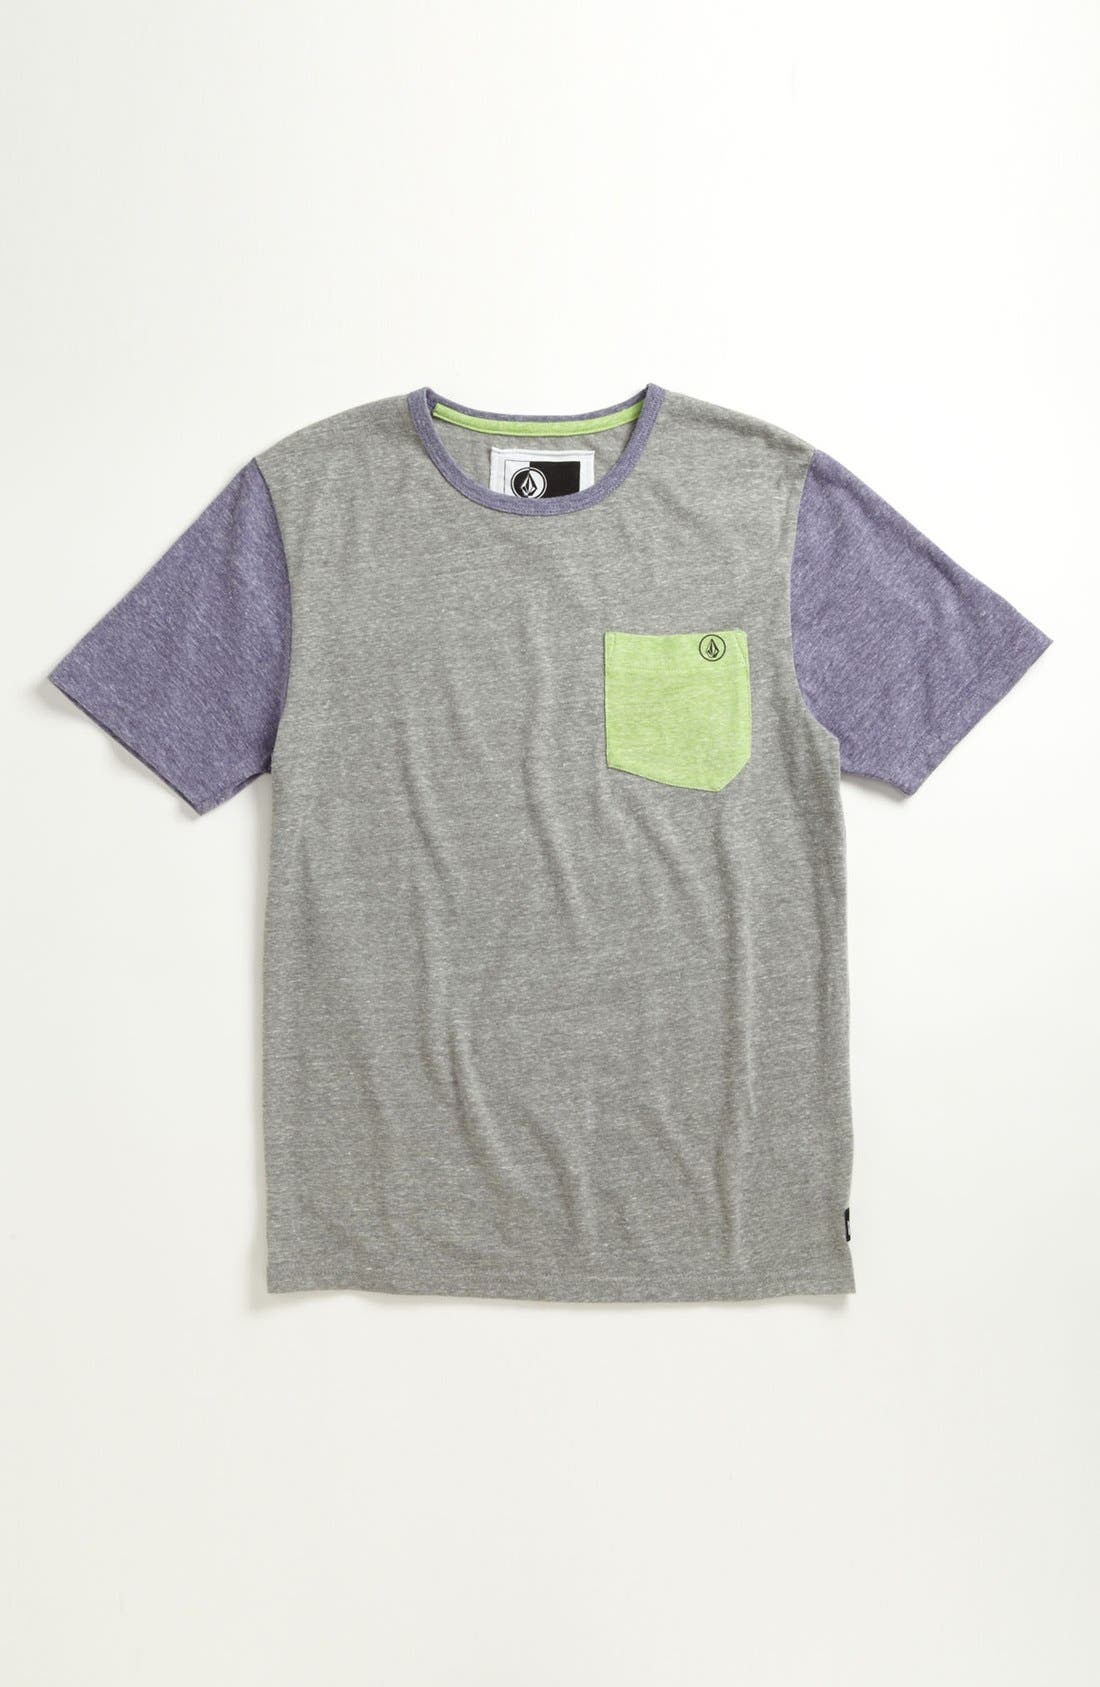 Alternate Image 1 Selected - Volcom 'Tempest' T-Shirt (Big Boys)